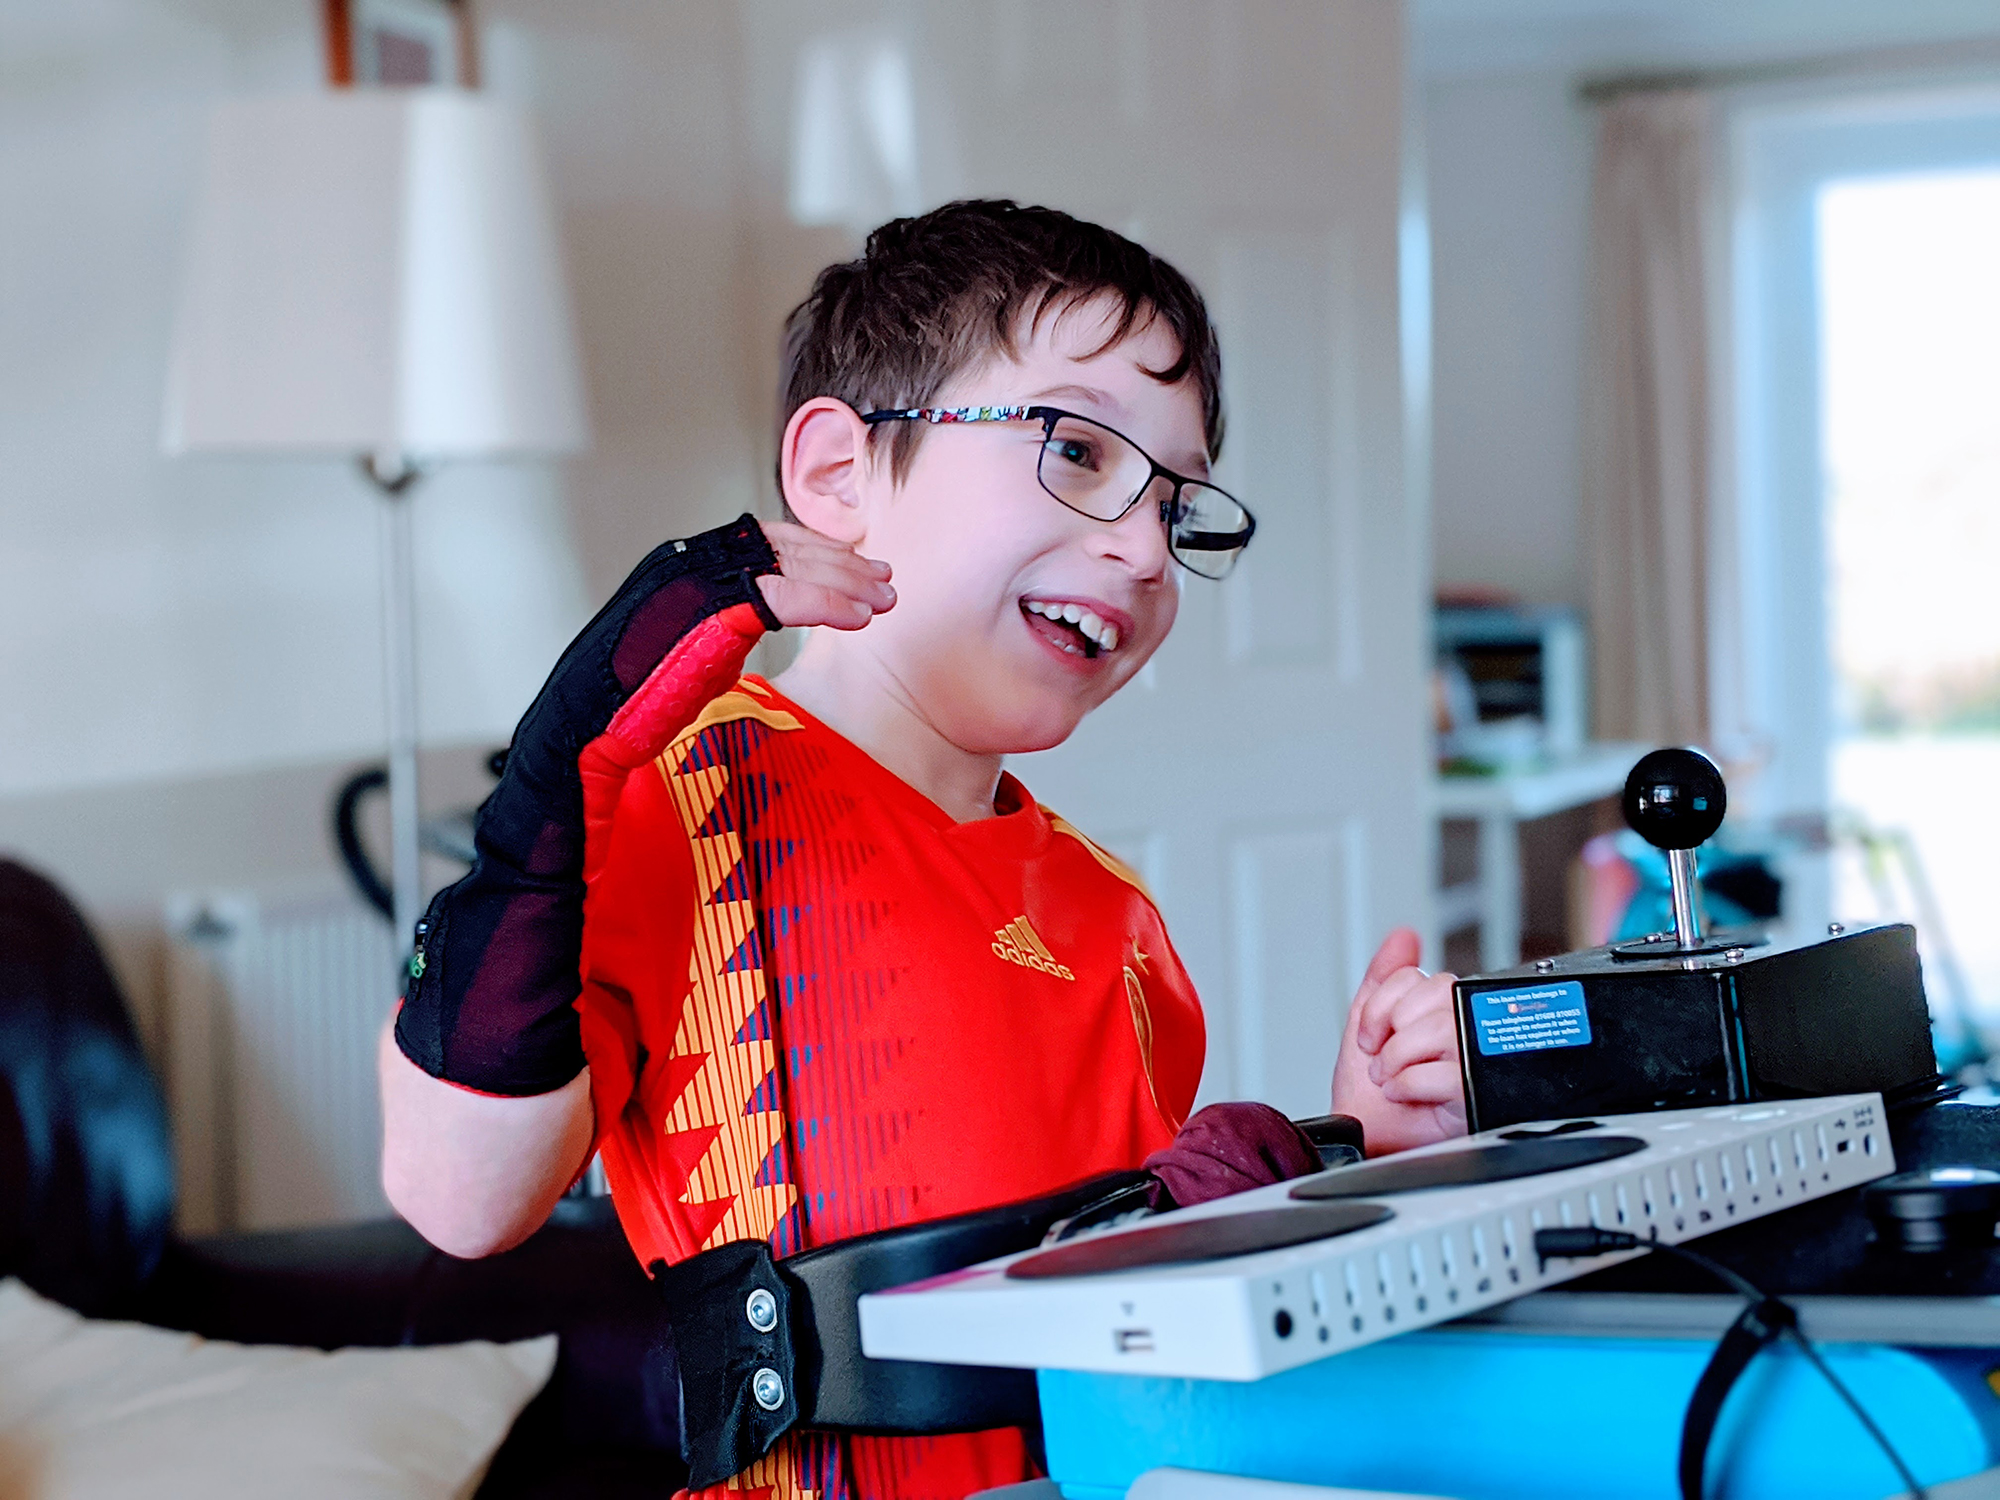 a young boy wearing a wrist brace and a red football tshirt plays with an xbox adaptive controller and a large joystick